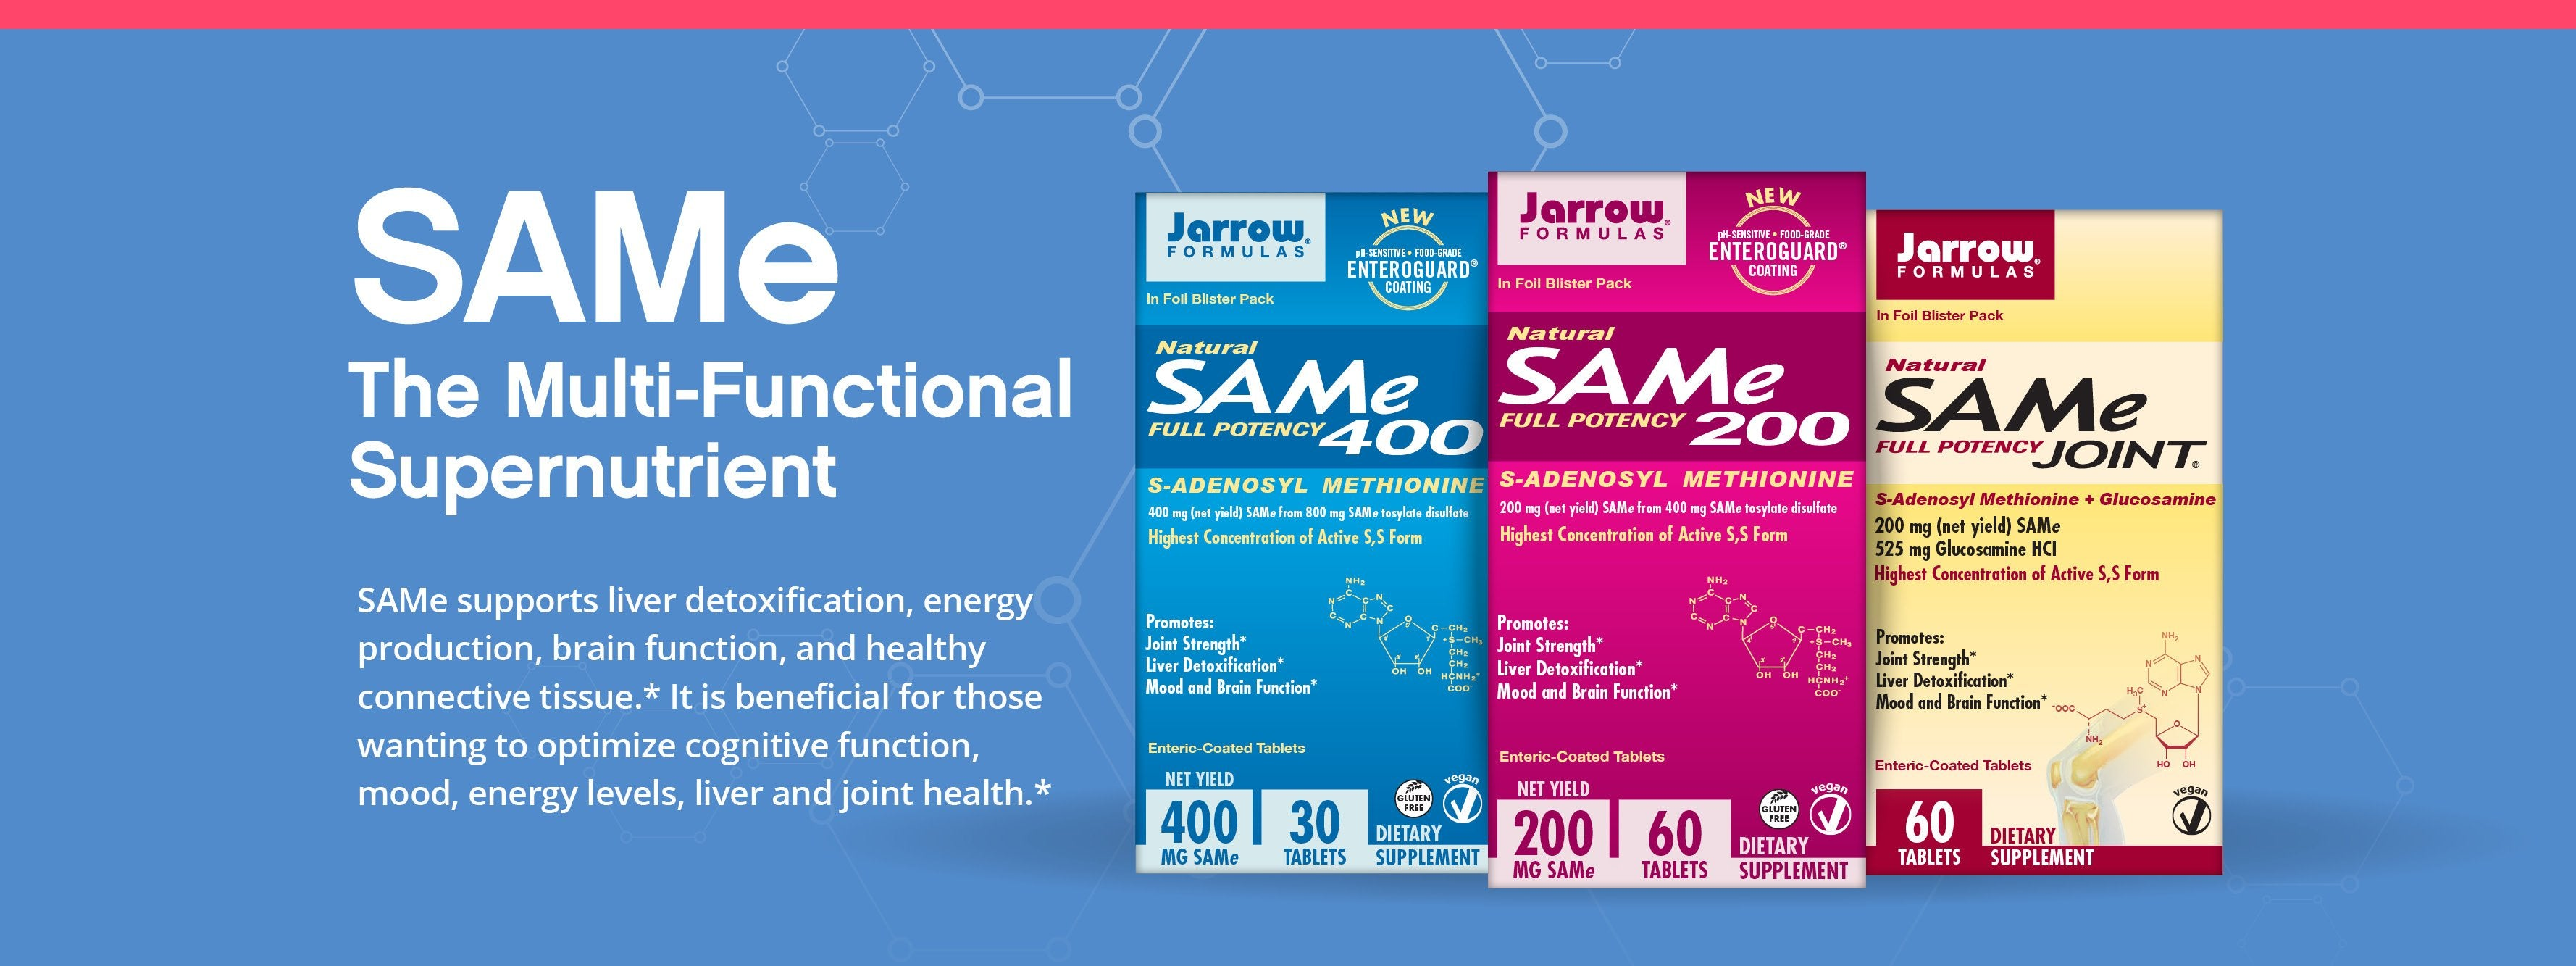 SAMe - The Multi-Functional Supernutrient